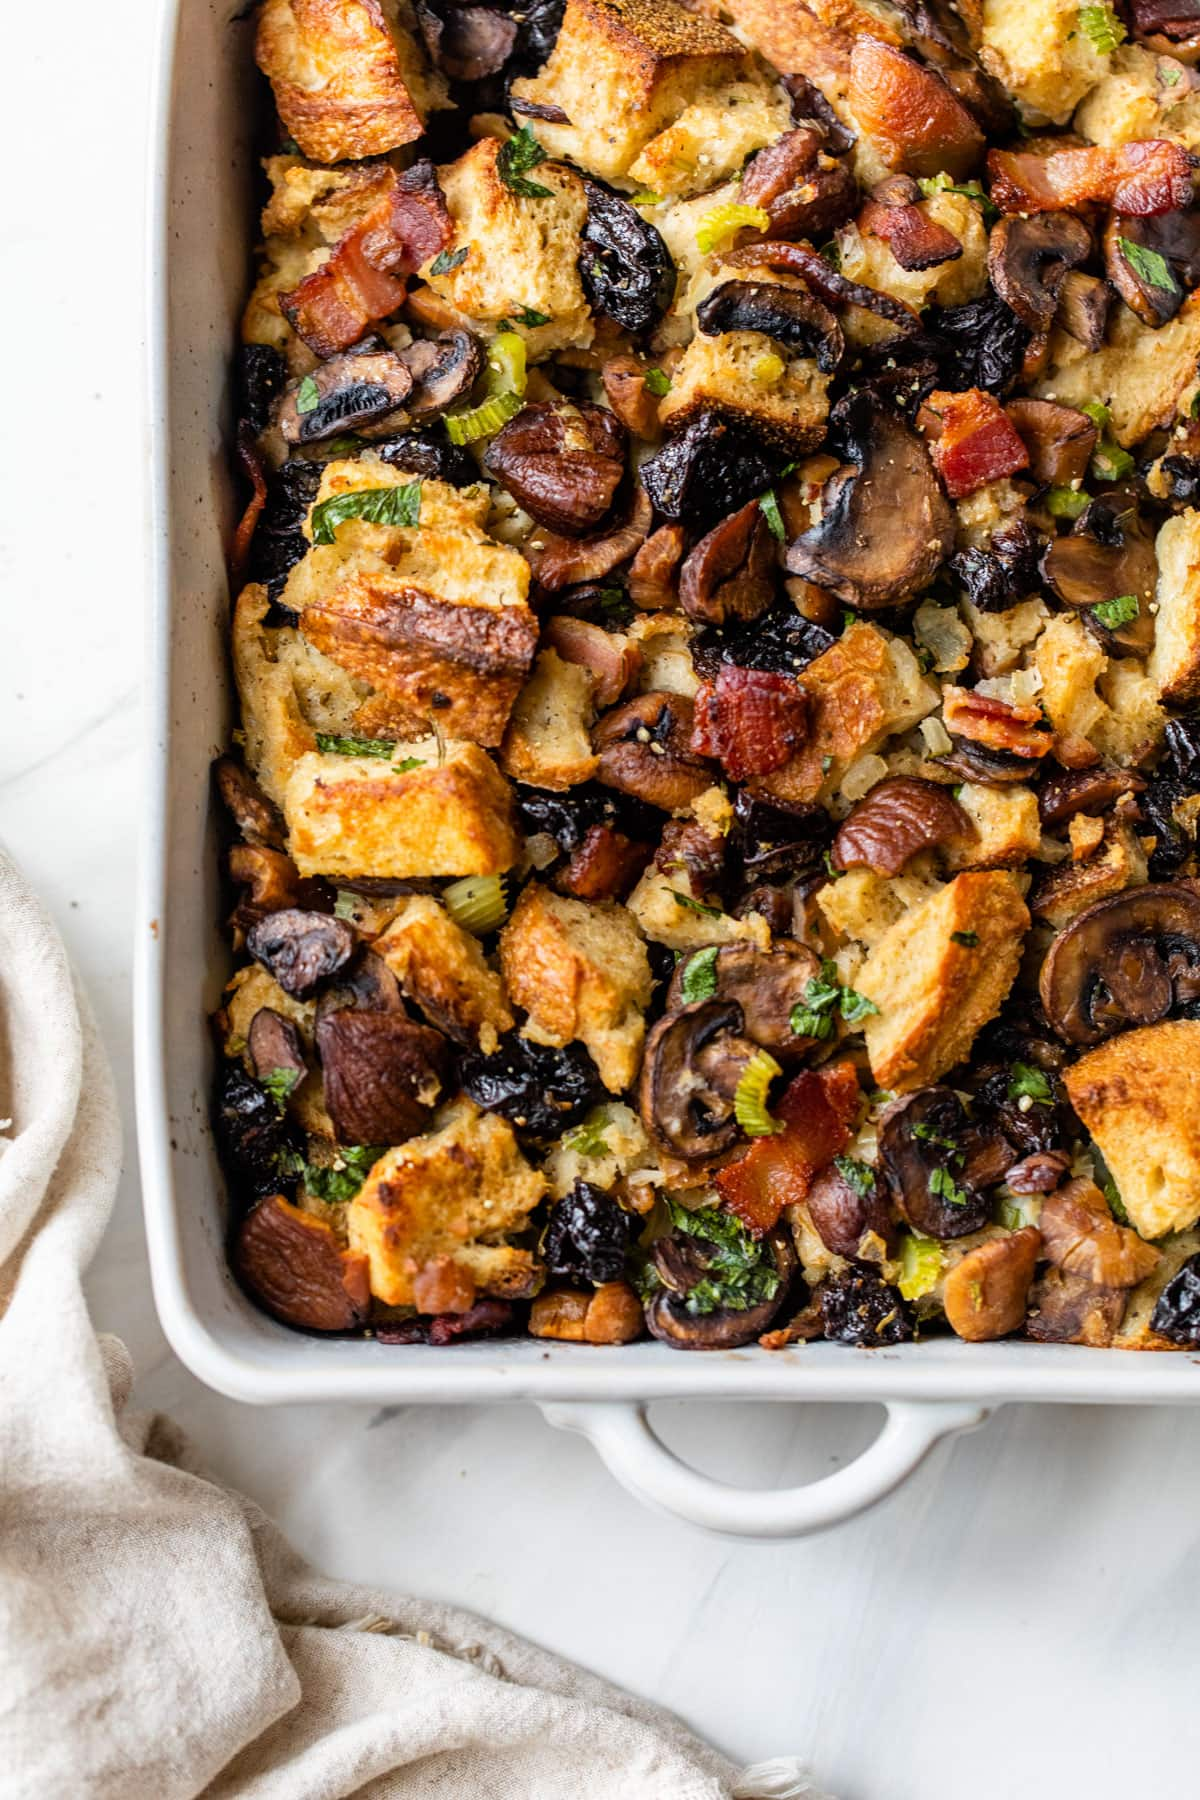 This Bacon Mushroom Stuffing will steal the show at Thanksgiving! Rosemary and dried plums make it extra special